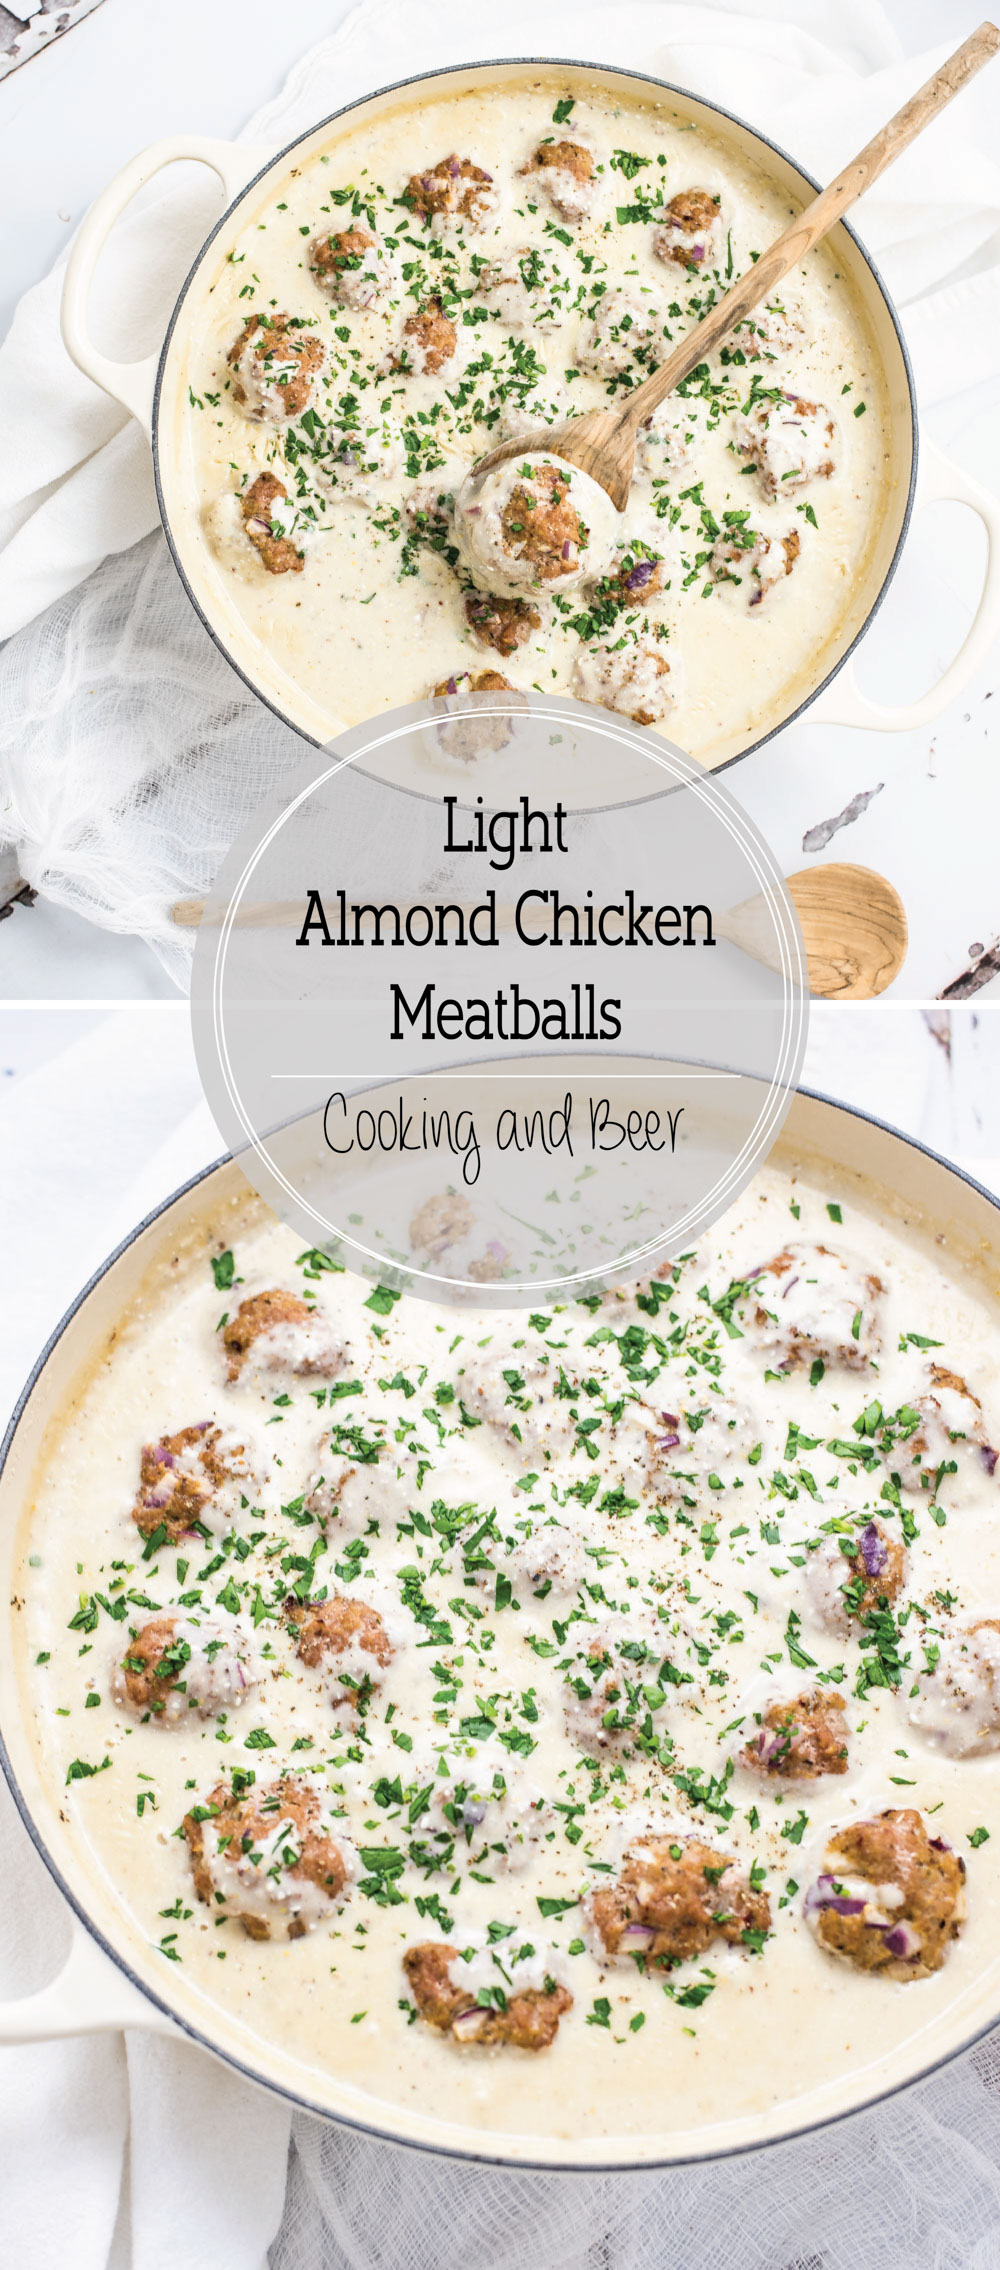 Light Almond Chicken Meatballs in Cauliflower Cream Sauce is a family-friendly weeknight meal that packs a lot of flavor, yet stays on the lighter side!